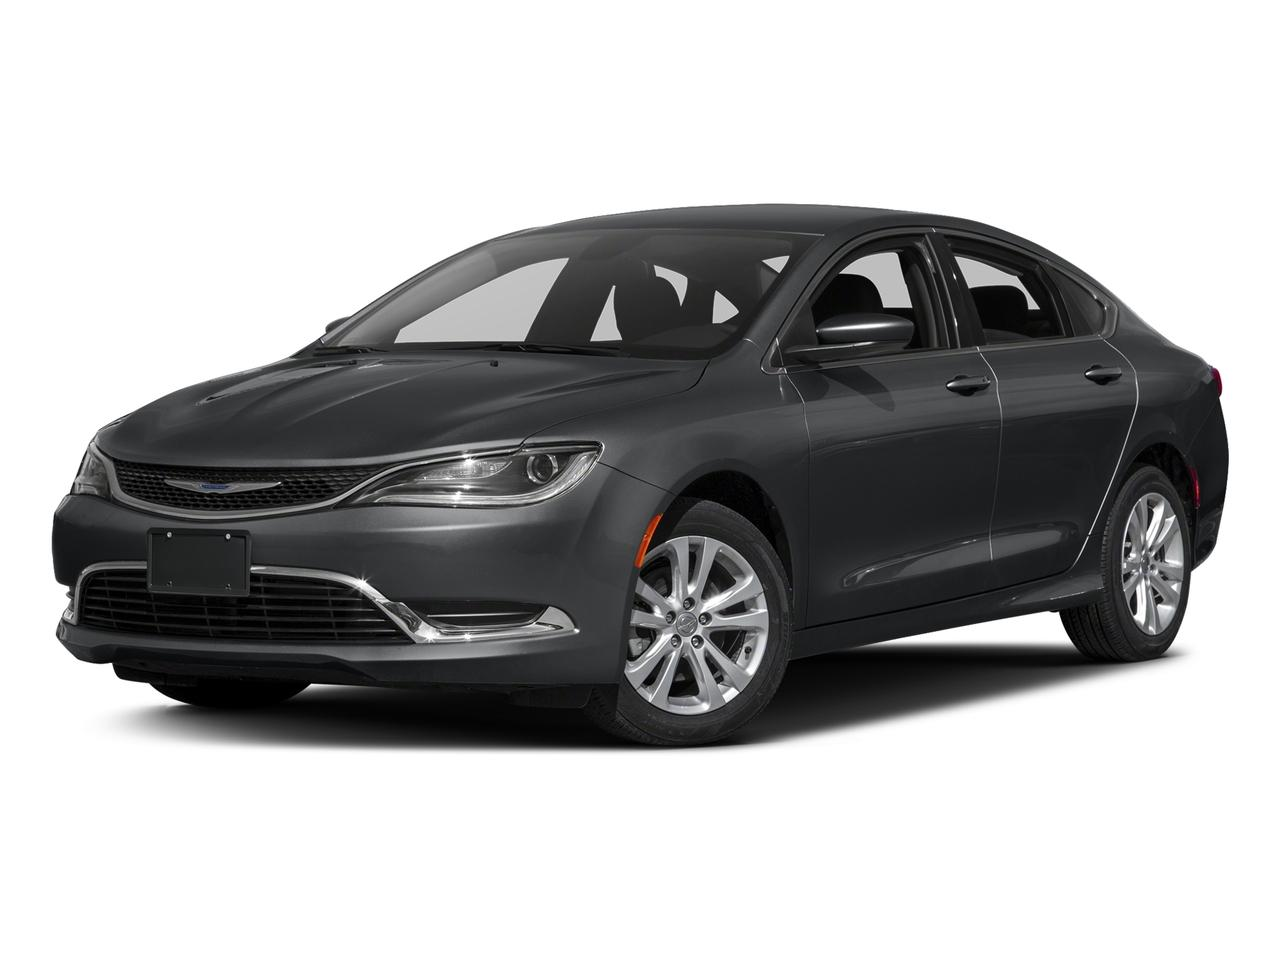 2016 Chrysler 200 Vehicle Photo in Oak Lawn, IL 60453